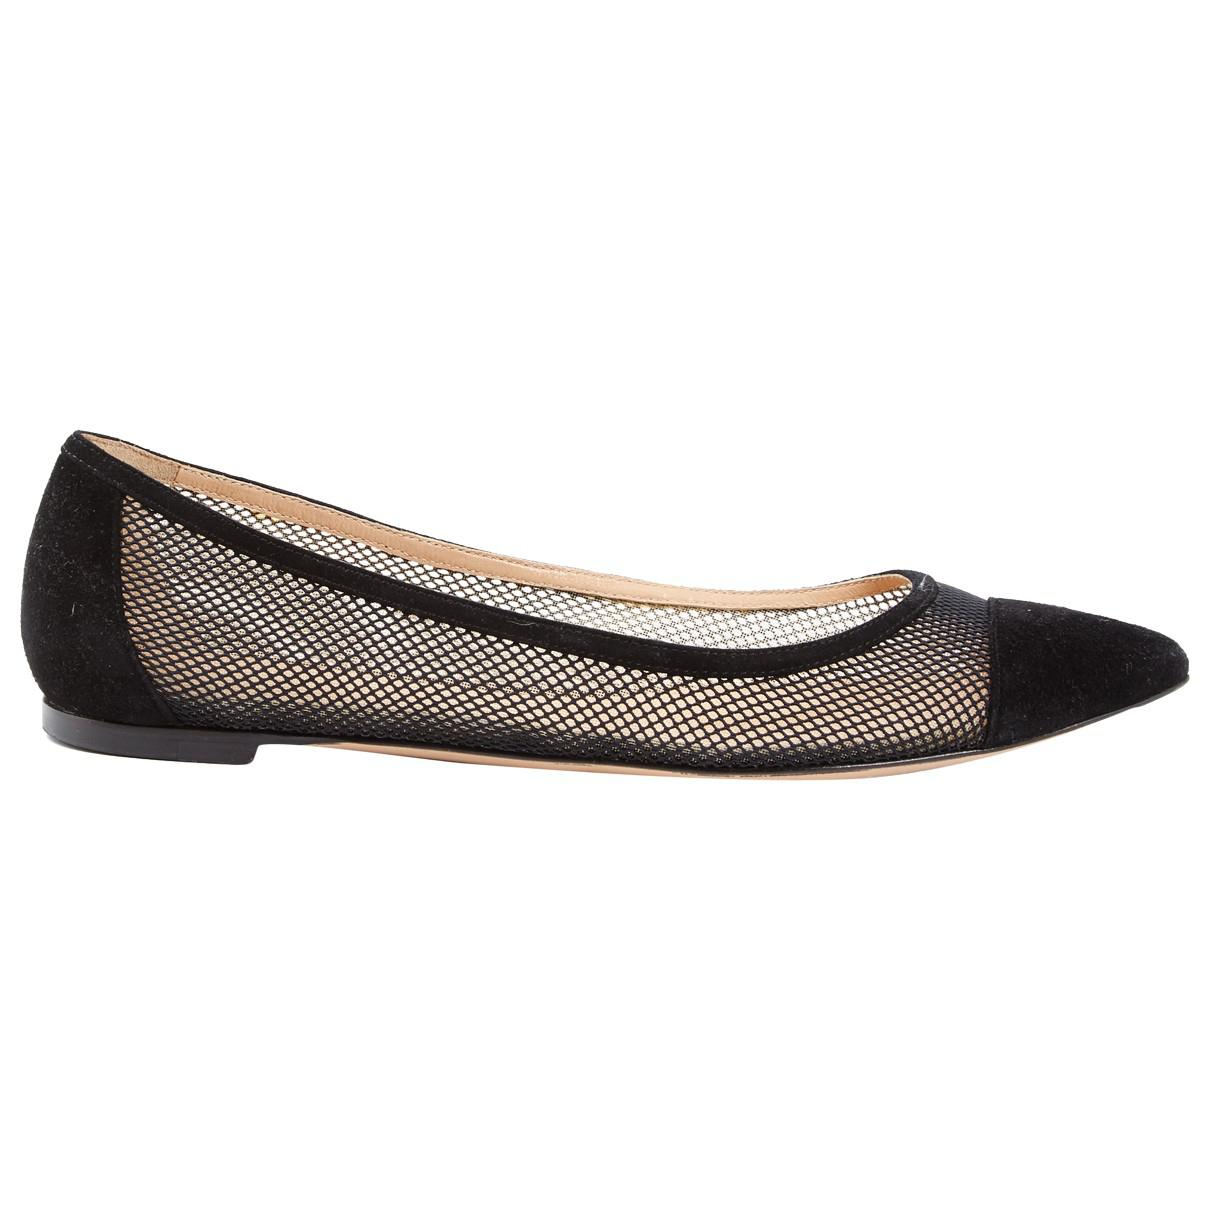 Pre-owned - Leather flats Gianvito Rossi rjOvH122f